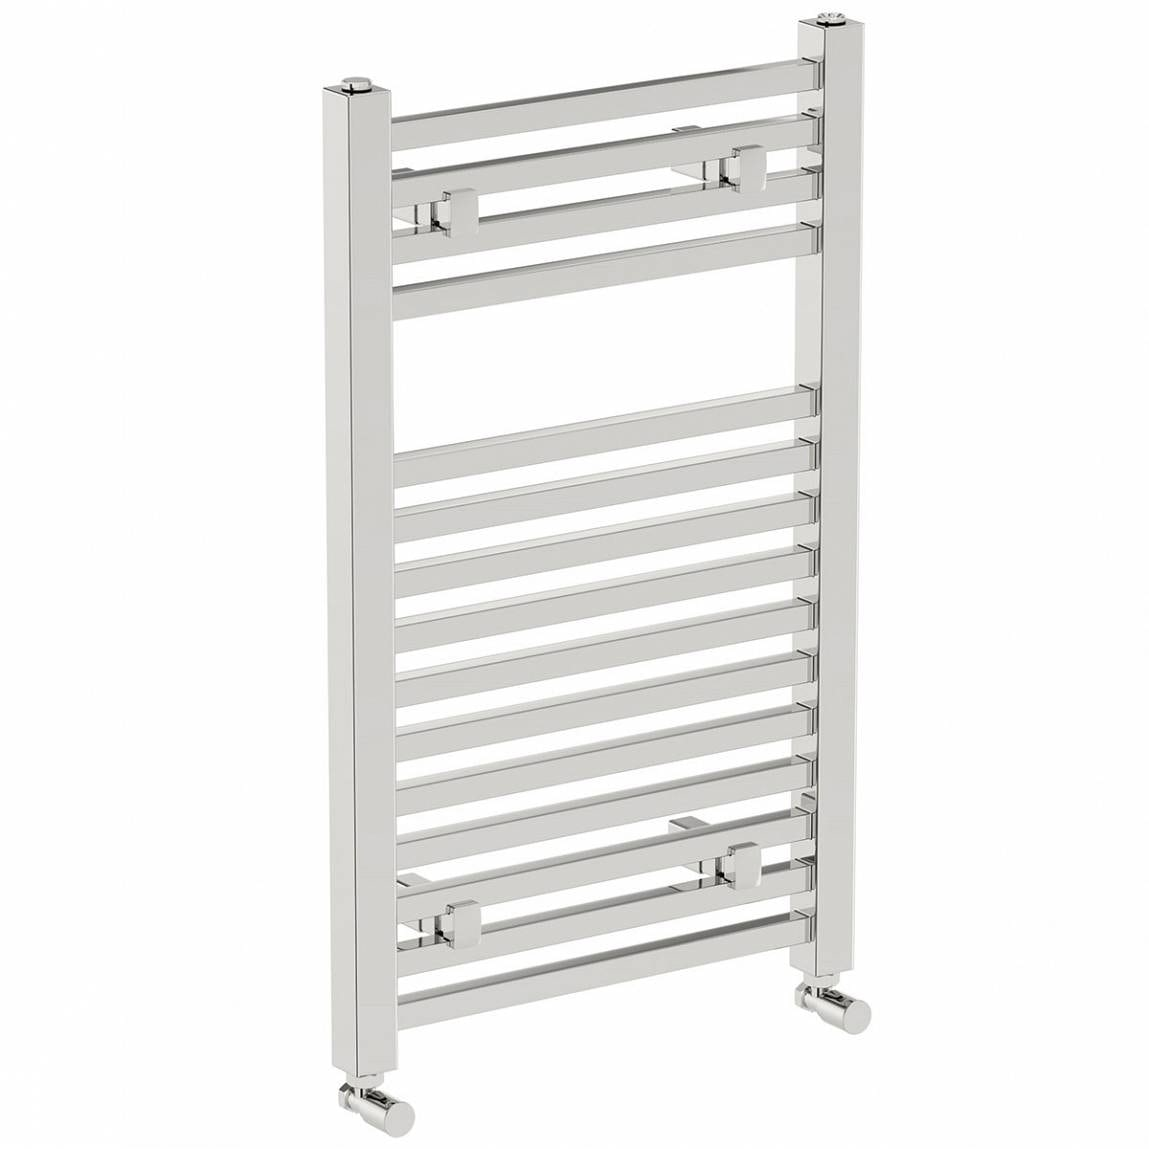 Orchard Wye heated towel rail 800 x 490 offer pack